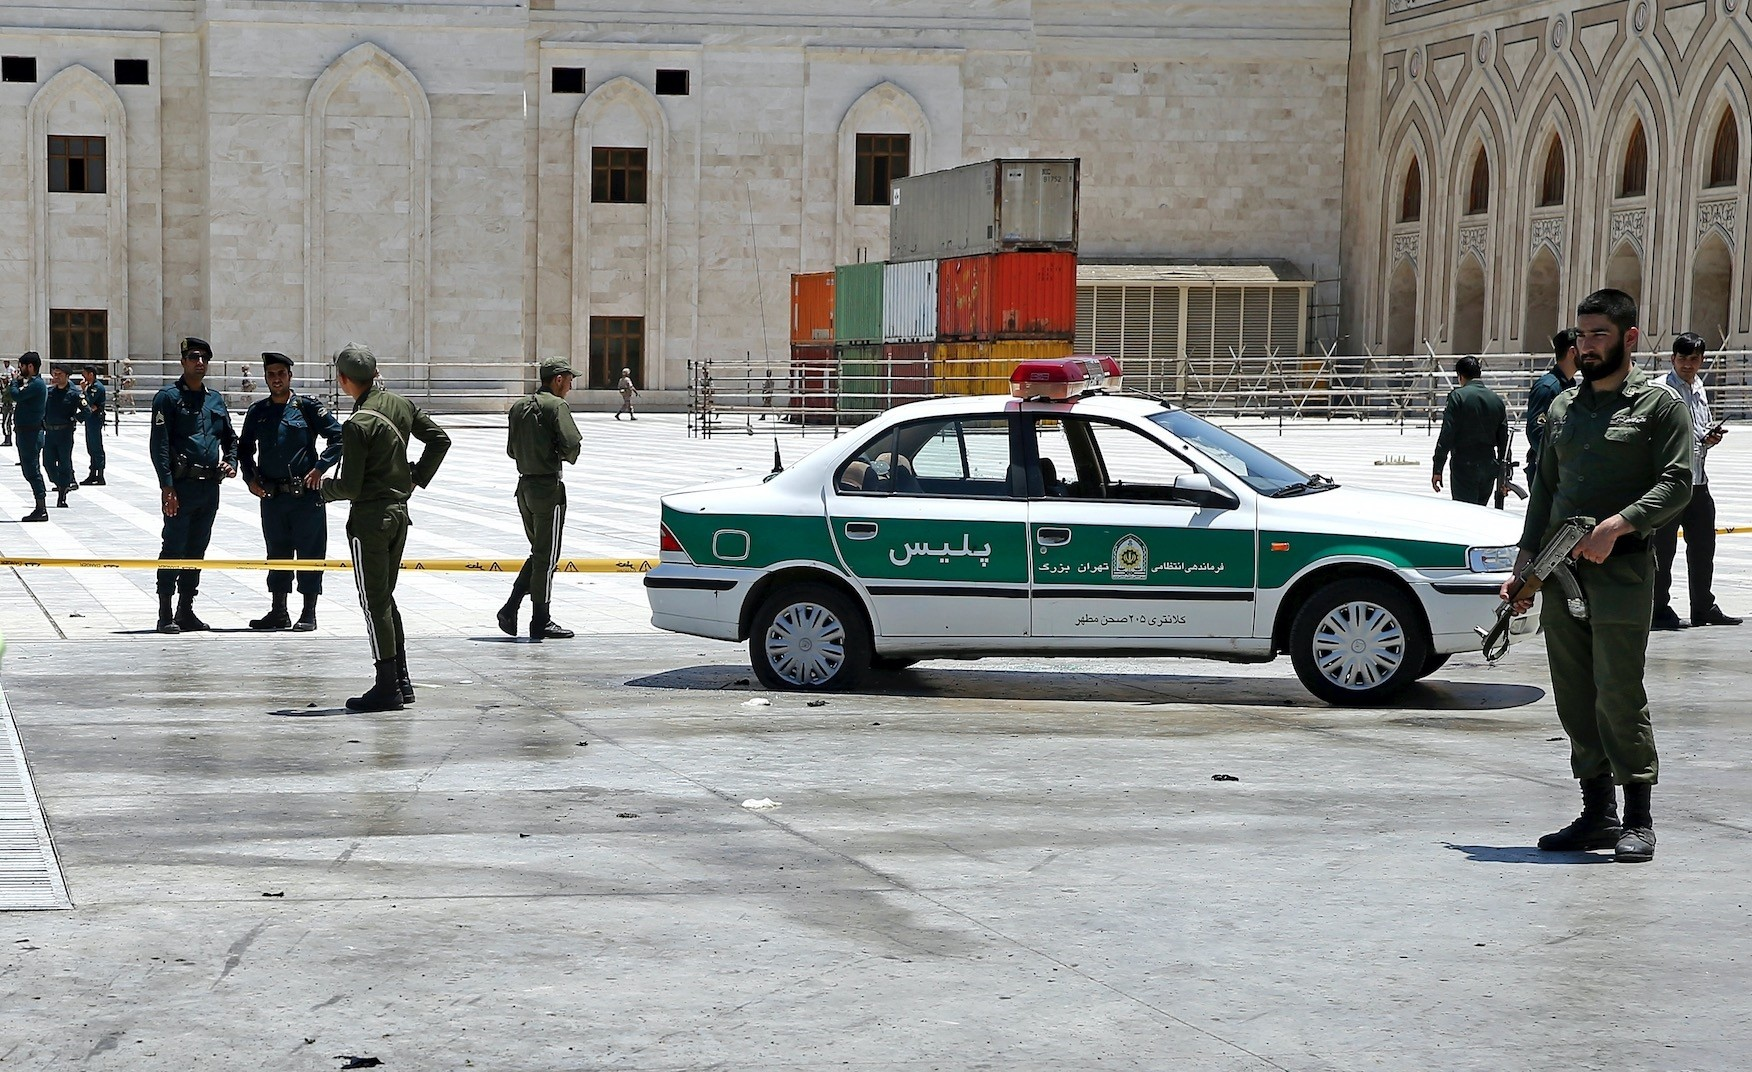 Iranian police officers control the scene, around the shrine of late Iranian revolutionary founder Ayatollah Khomeini, after an assault by several attackers in Tehran on Wednesday.